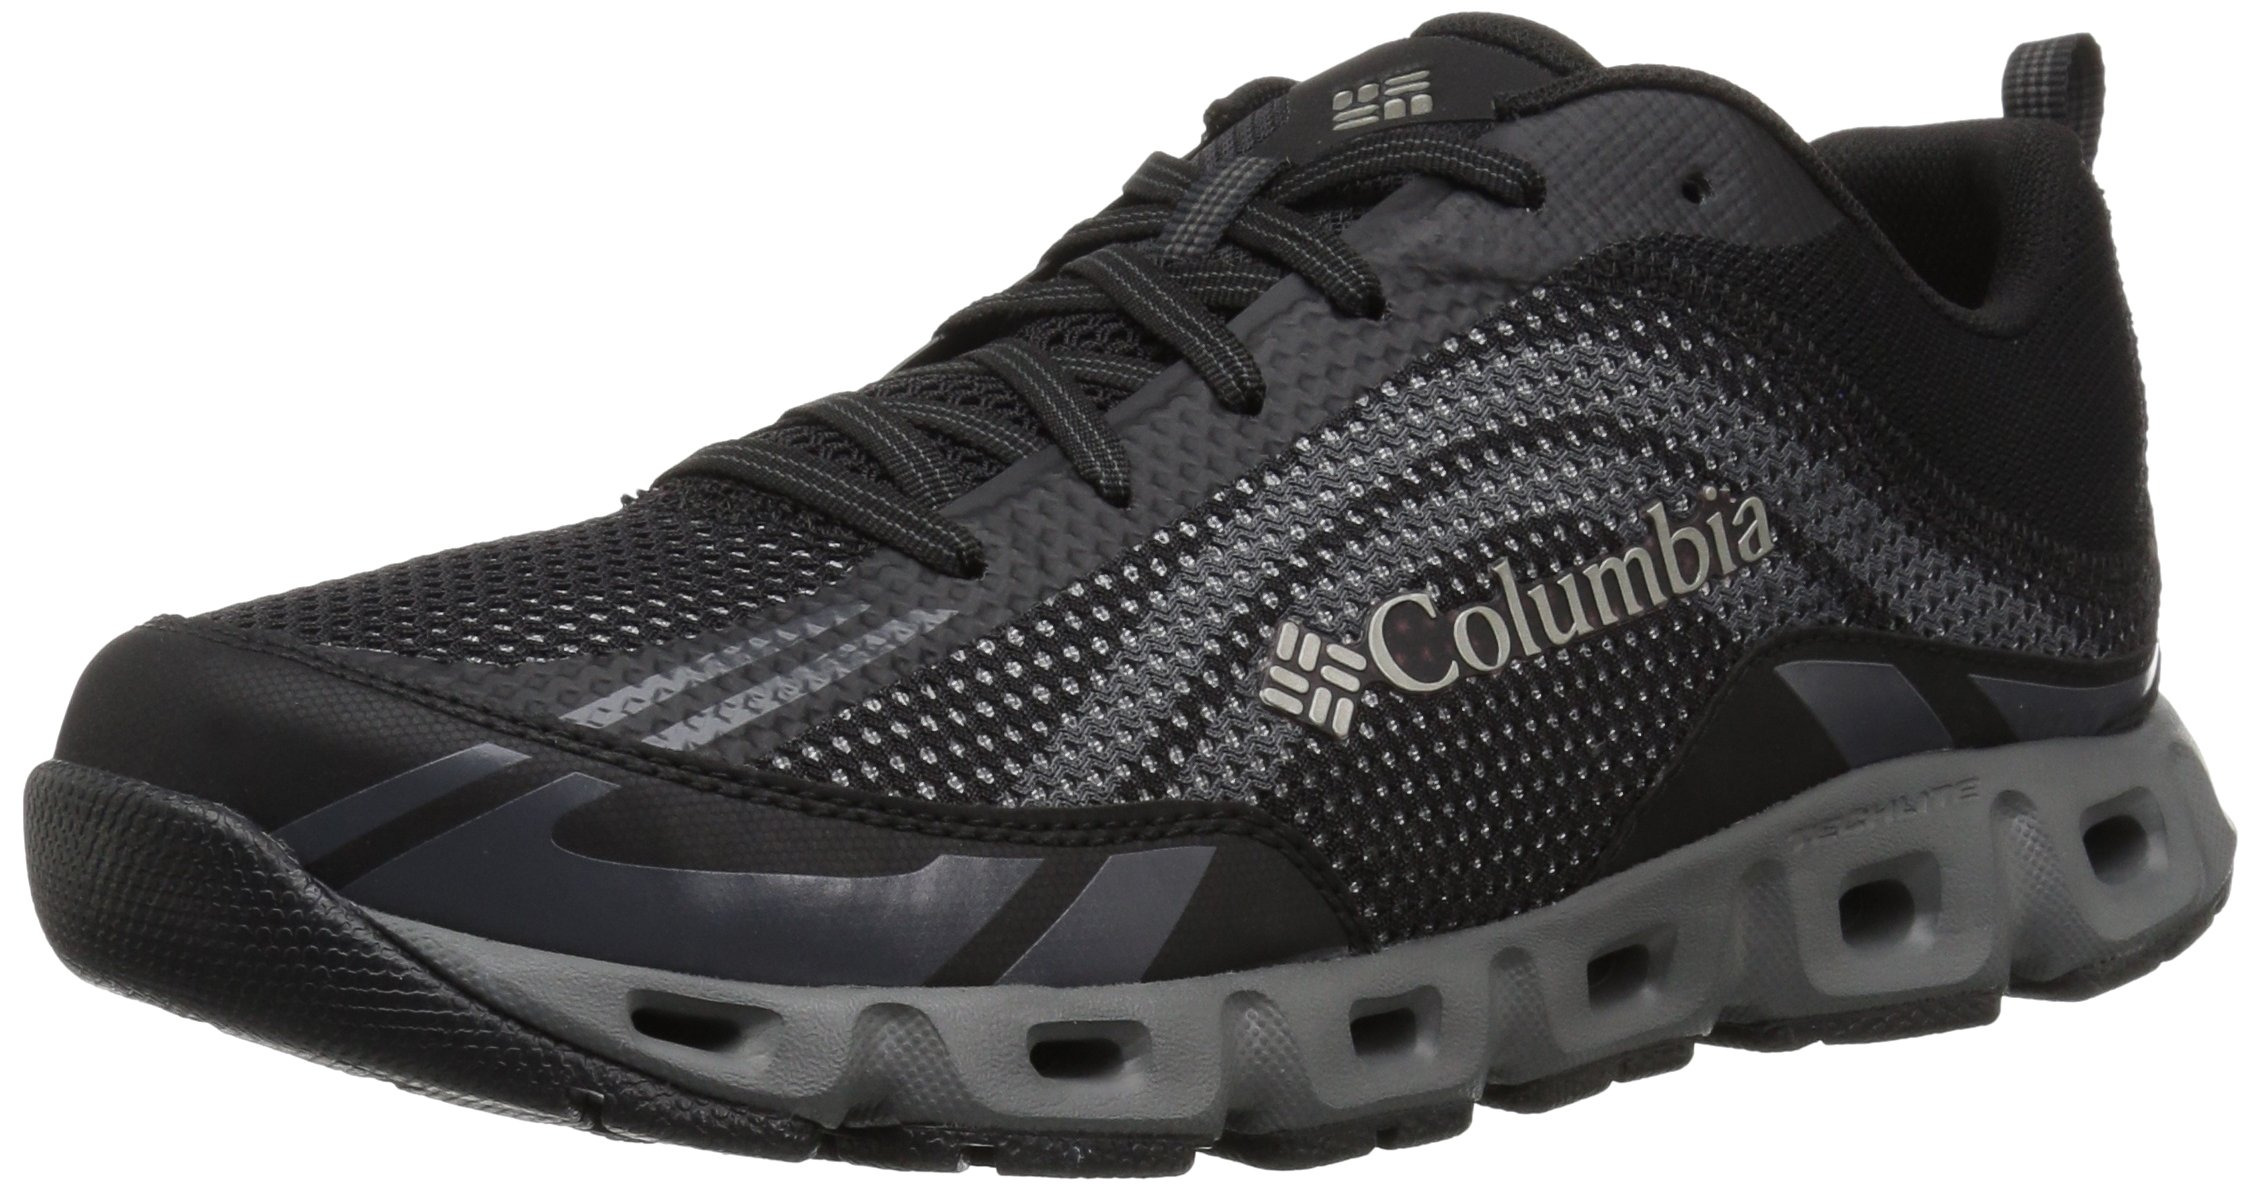 Columbia Men's Drainmaker IV Water Shoe, Black, Lux, 10.5 Regular US by Columbia